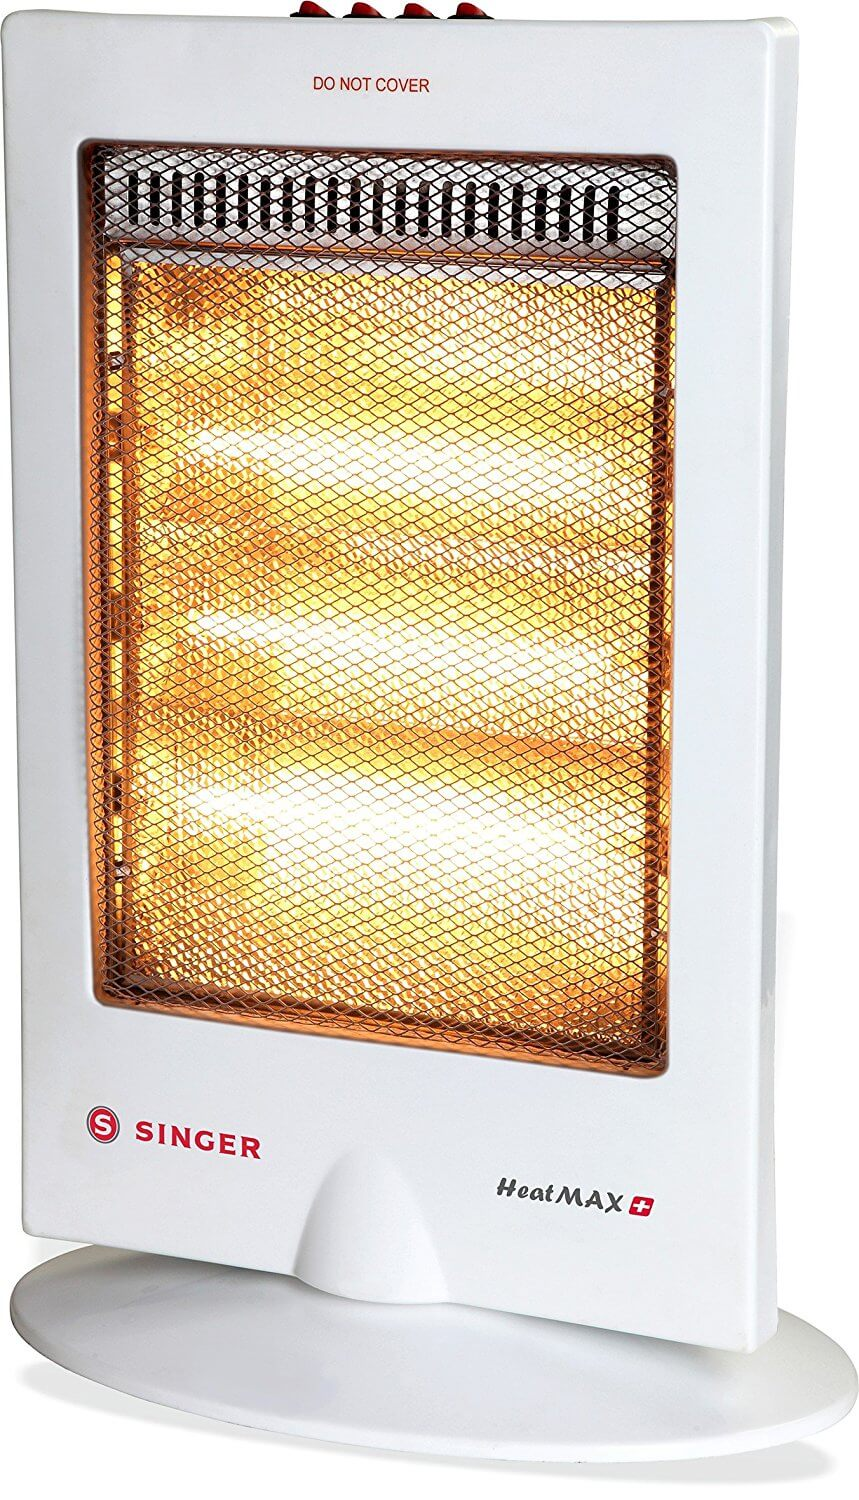 Singer Heatmax Plus 1200 Watts 3 Rod Halogen Heater